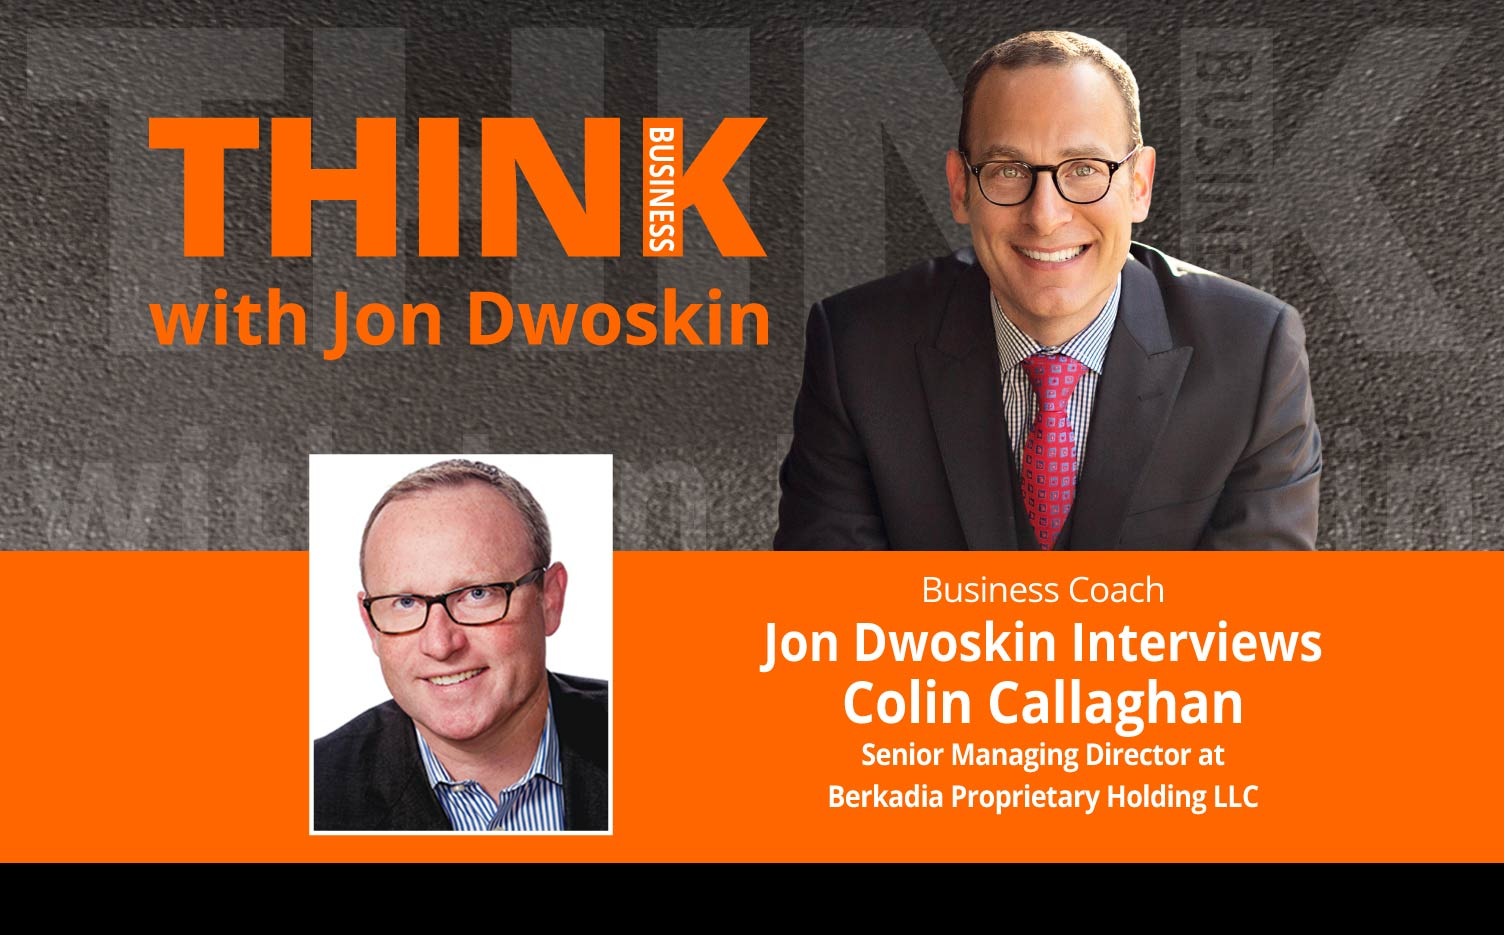 THINK Business Podcast: Jon Dwoskin Interviews Colin Callaghan, Senior Managing Director at Berkadia Proprietary Holding LLC